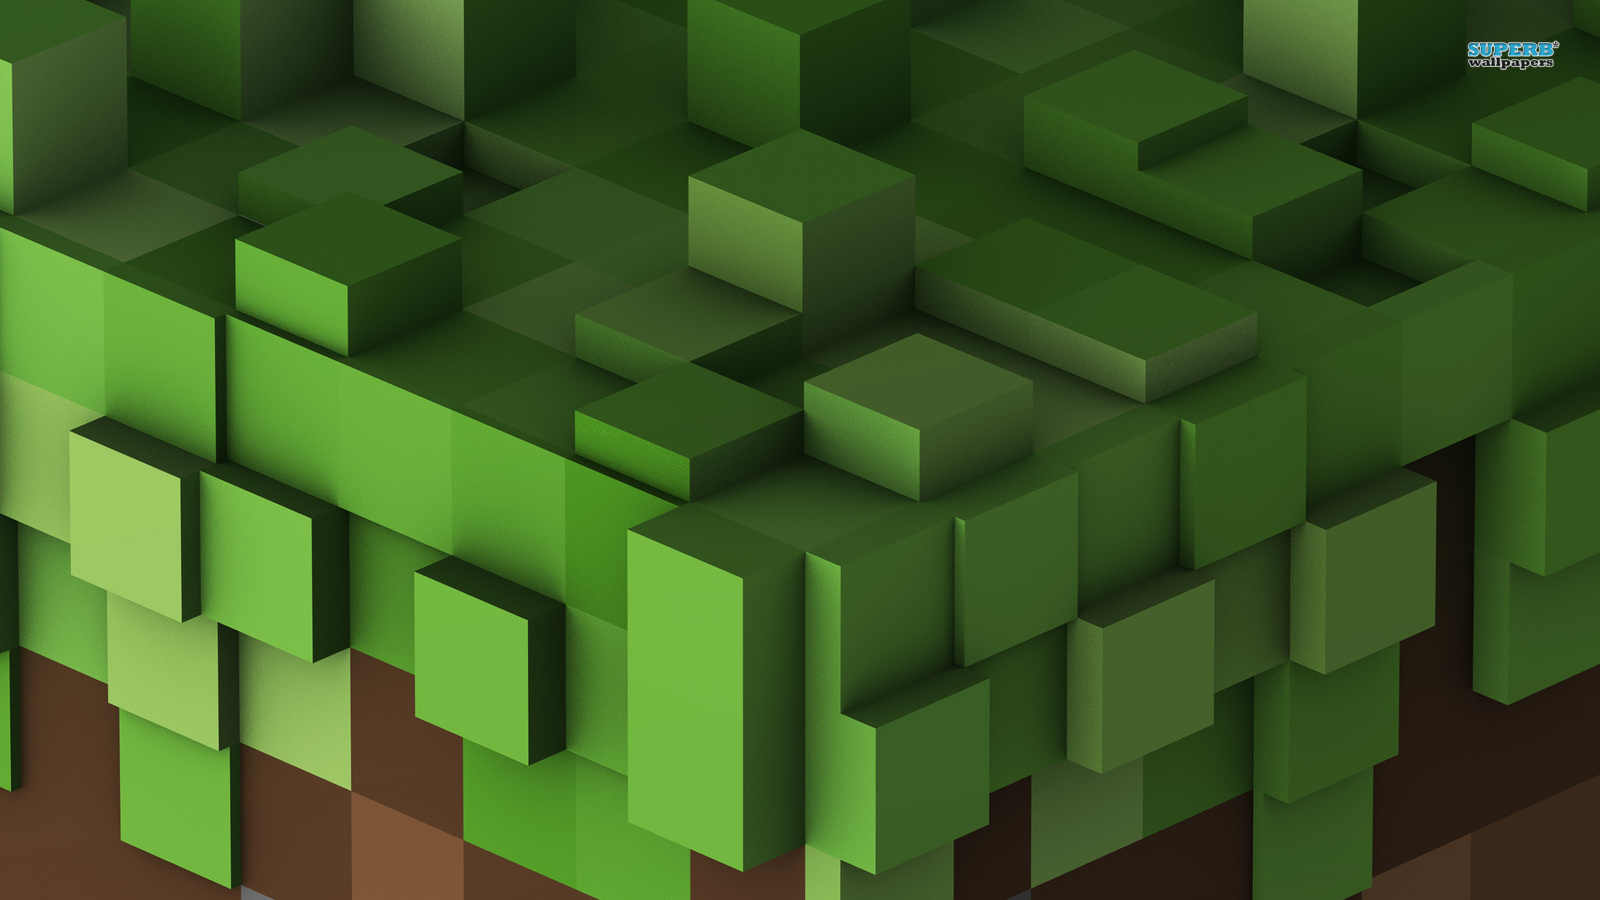 Minecraft Images HD Wallpaper And Background Photos